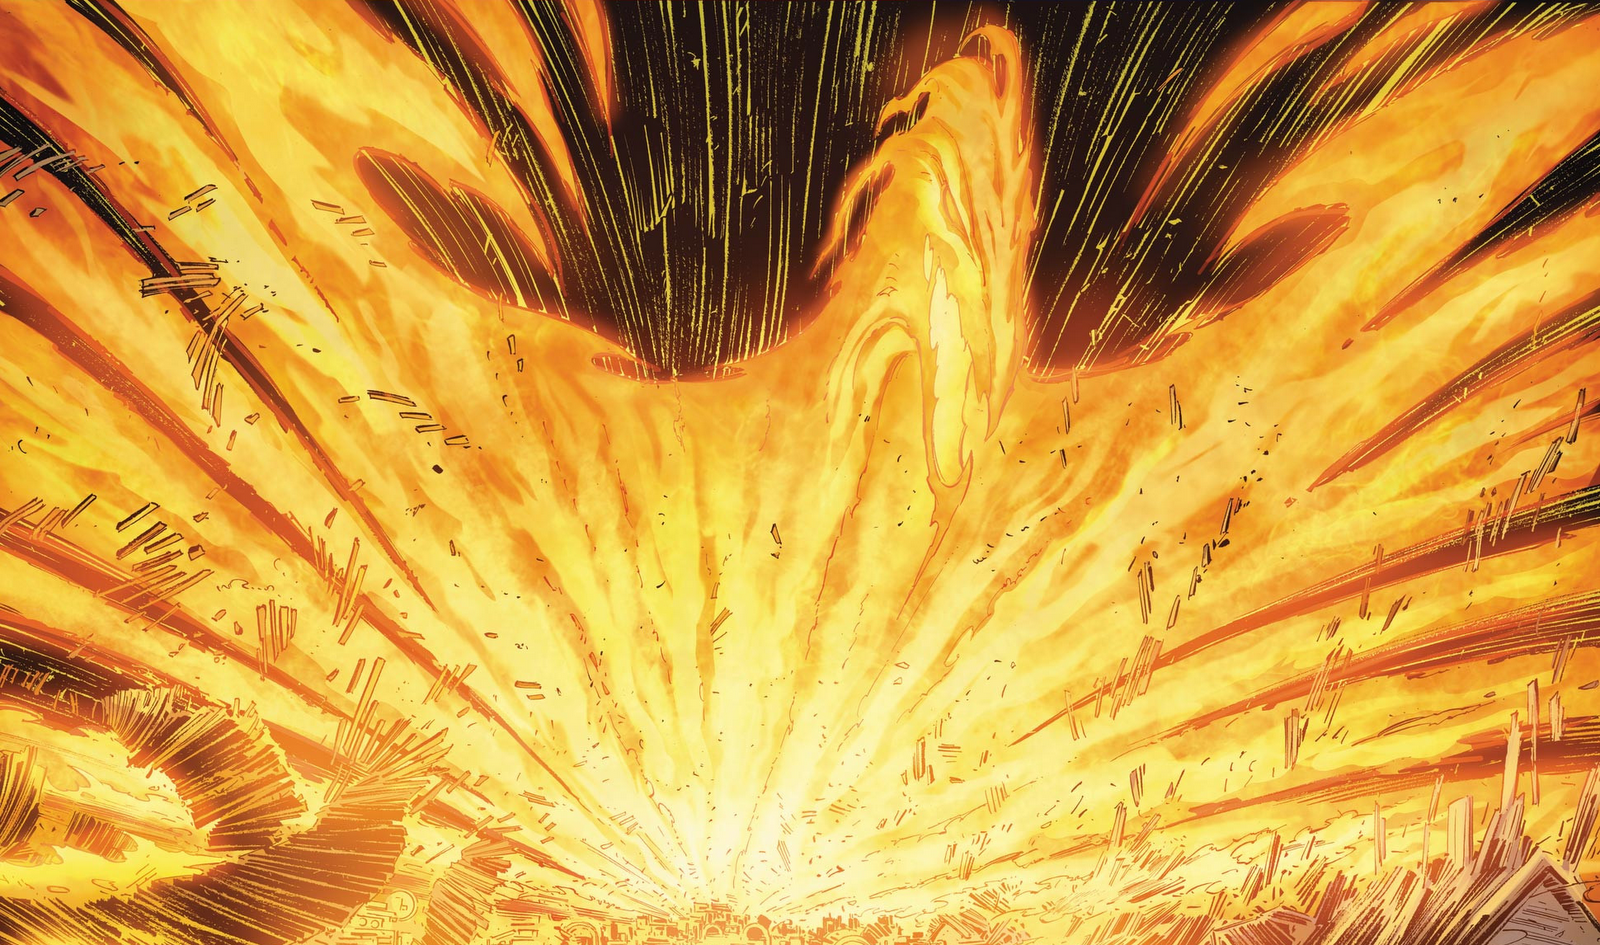 High Resolution Wallpaper | Phoenix Force 1600x945 px